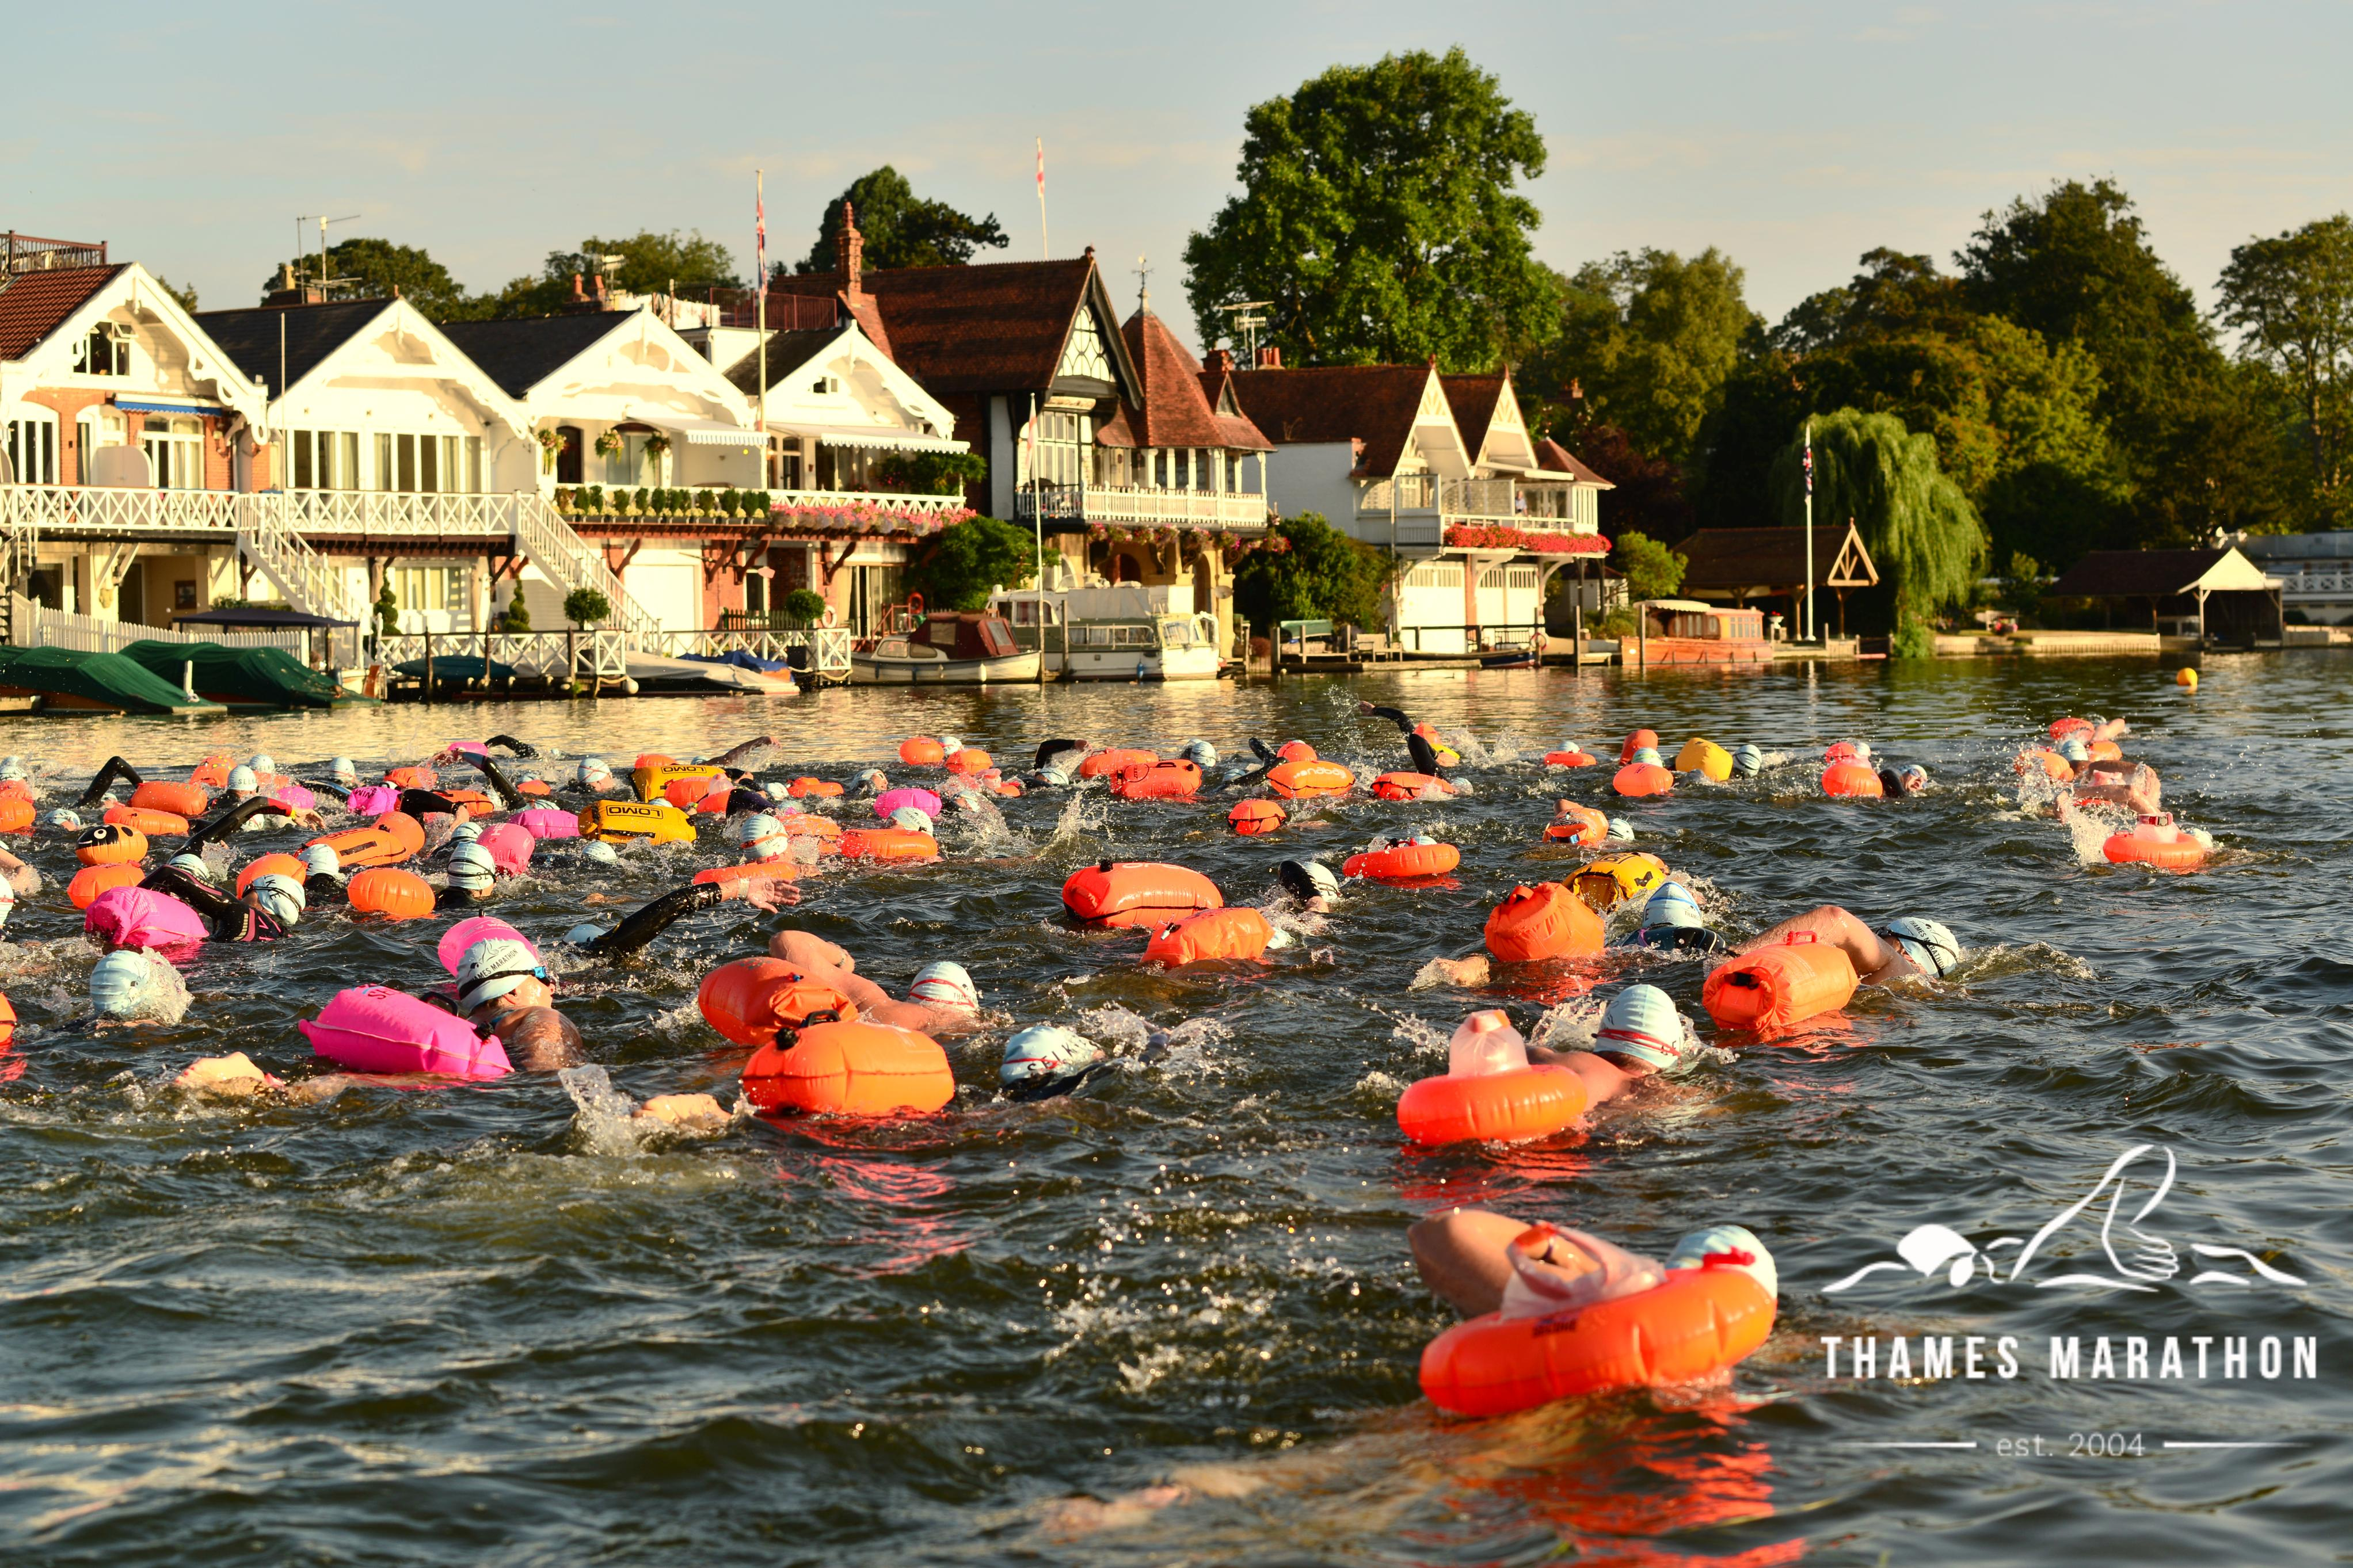 Thames Marathon (14km Henley to Marlow) - cover image